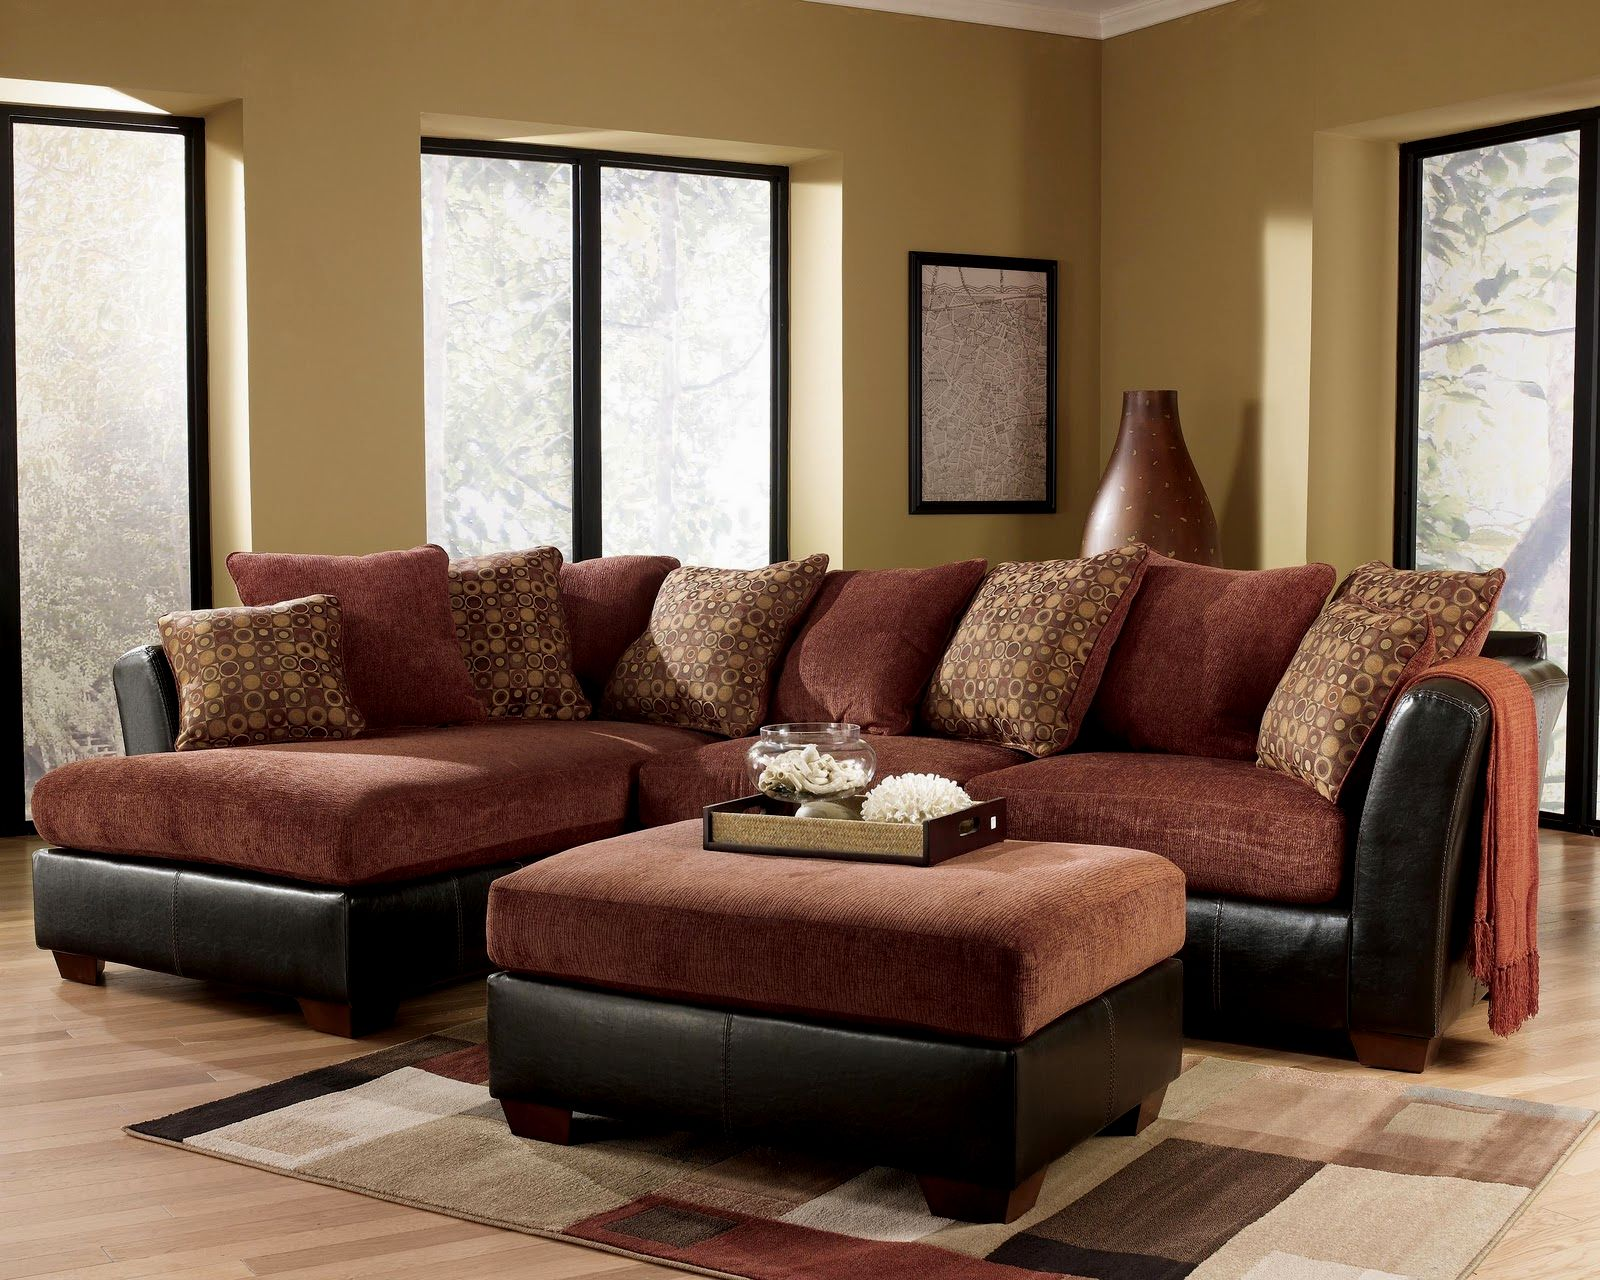 beautiful sectional sofa with recliner design-Excellent Sectional sofa with Recliner Picture